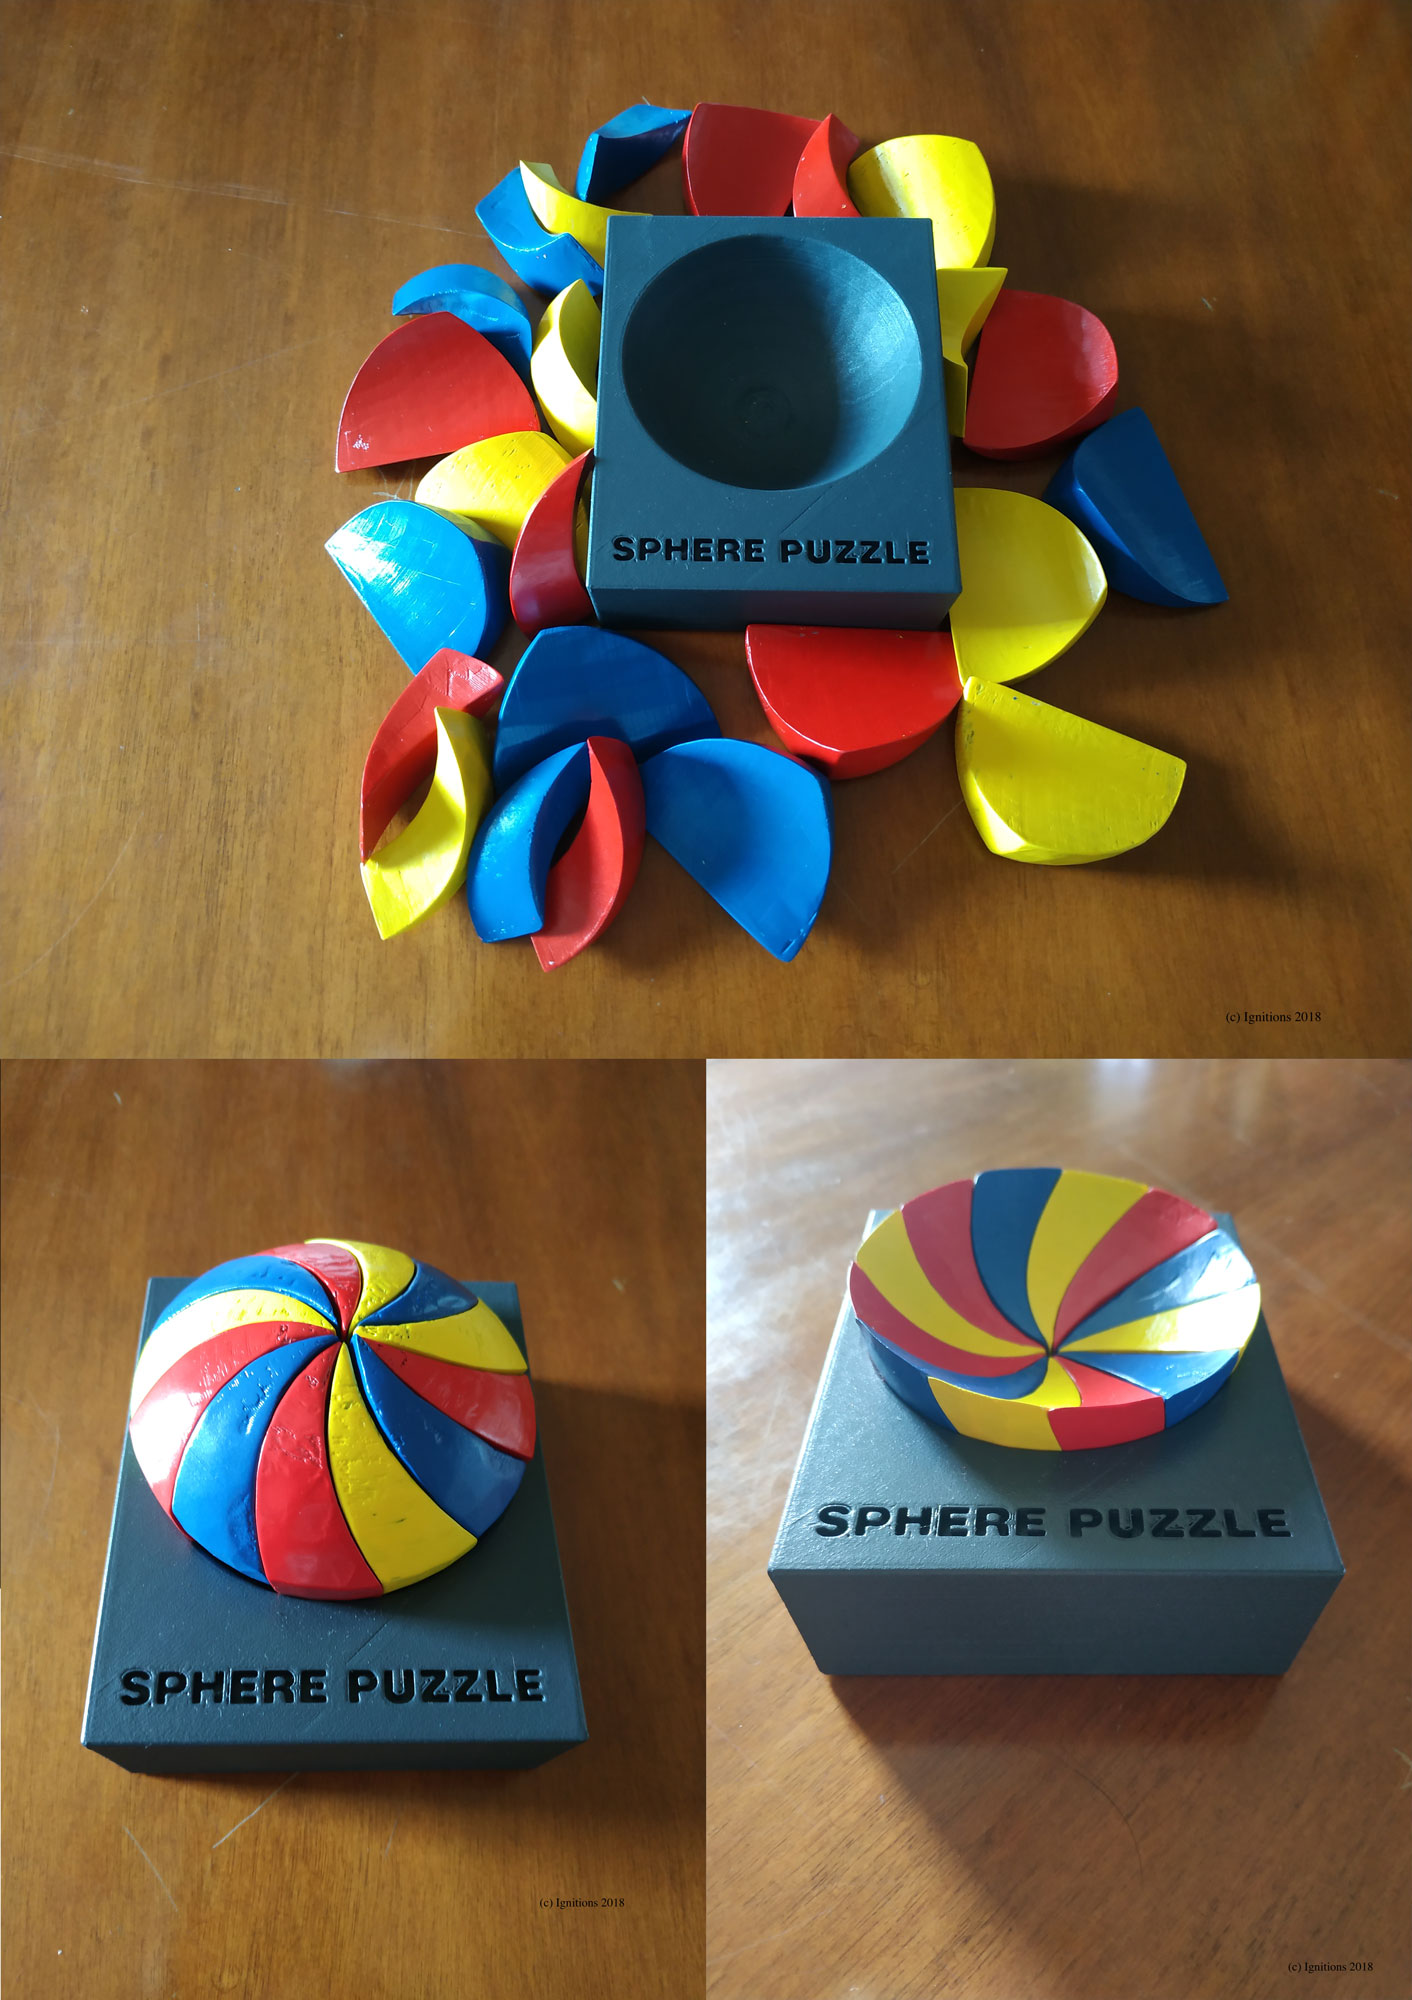 Construction of the Sphere Puzzle. (With R. Karteri)